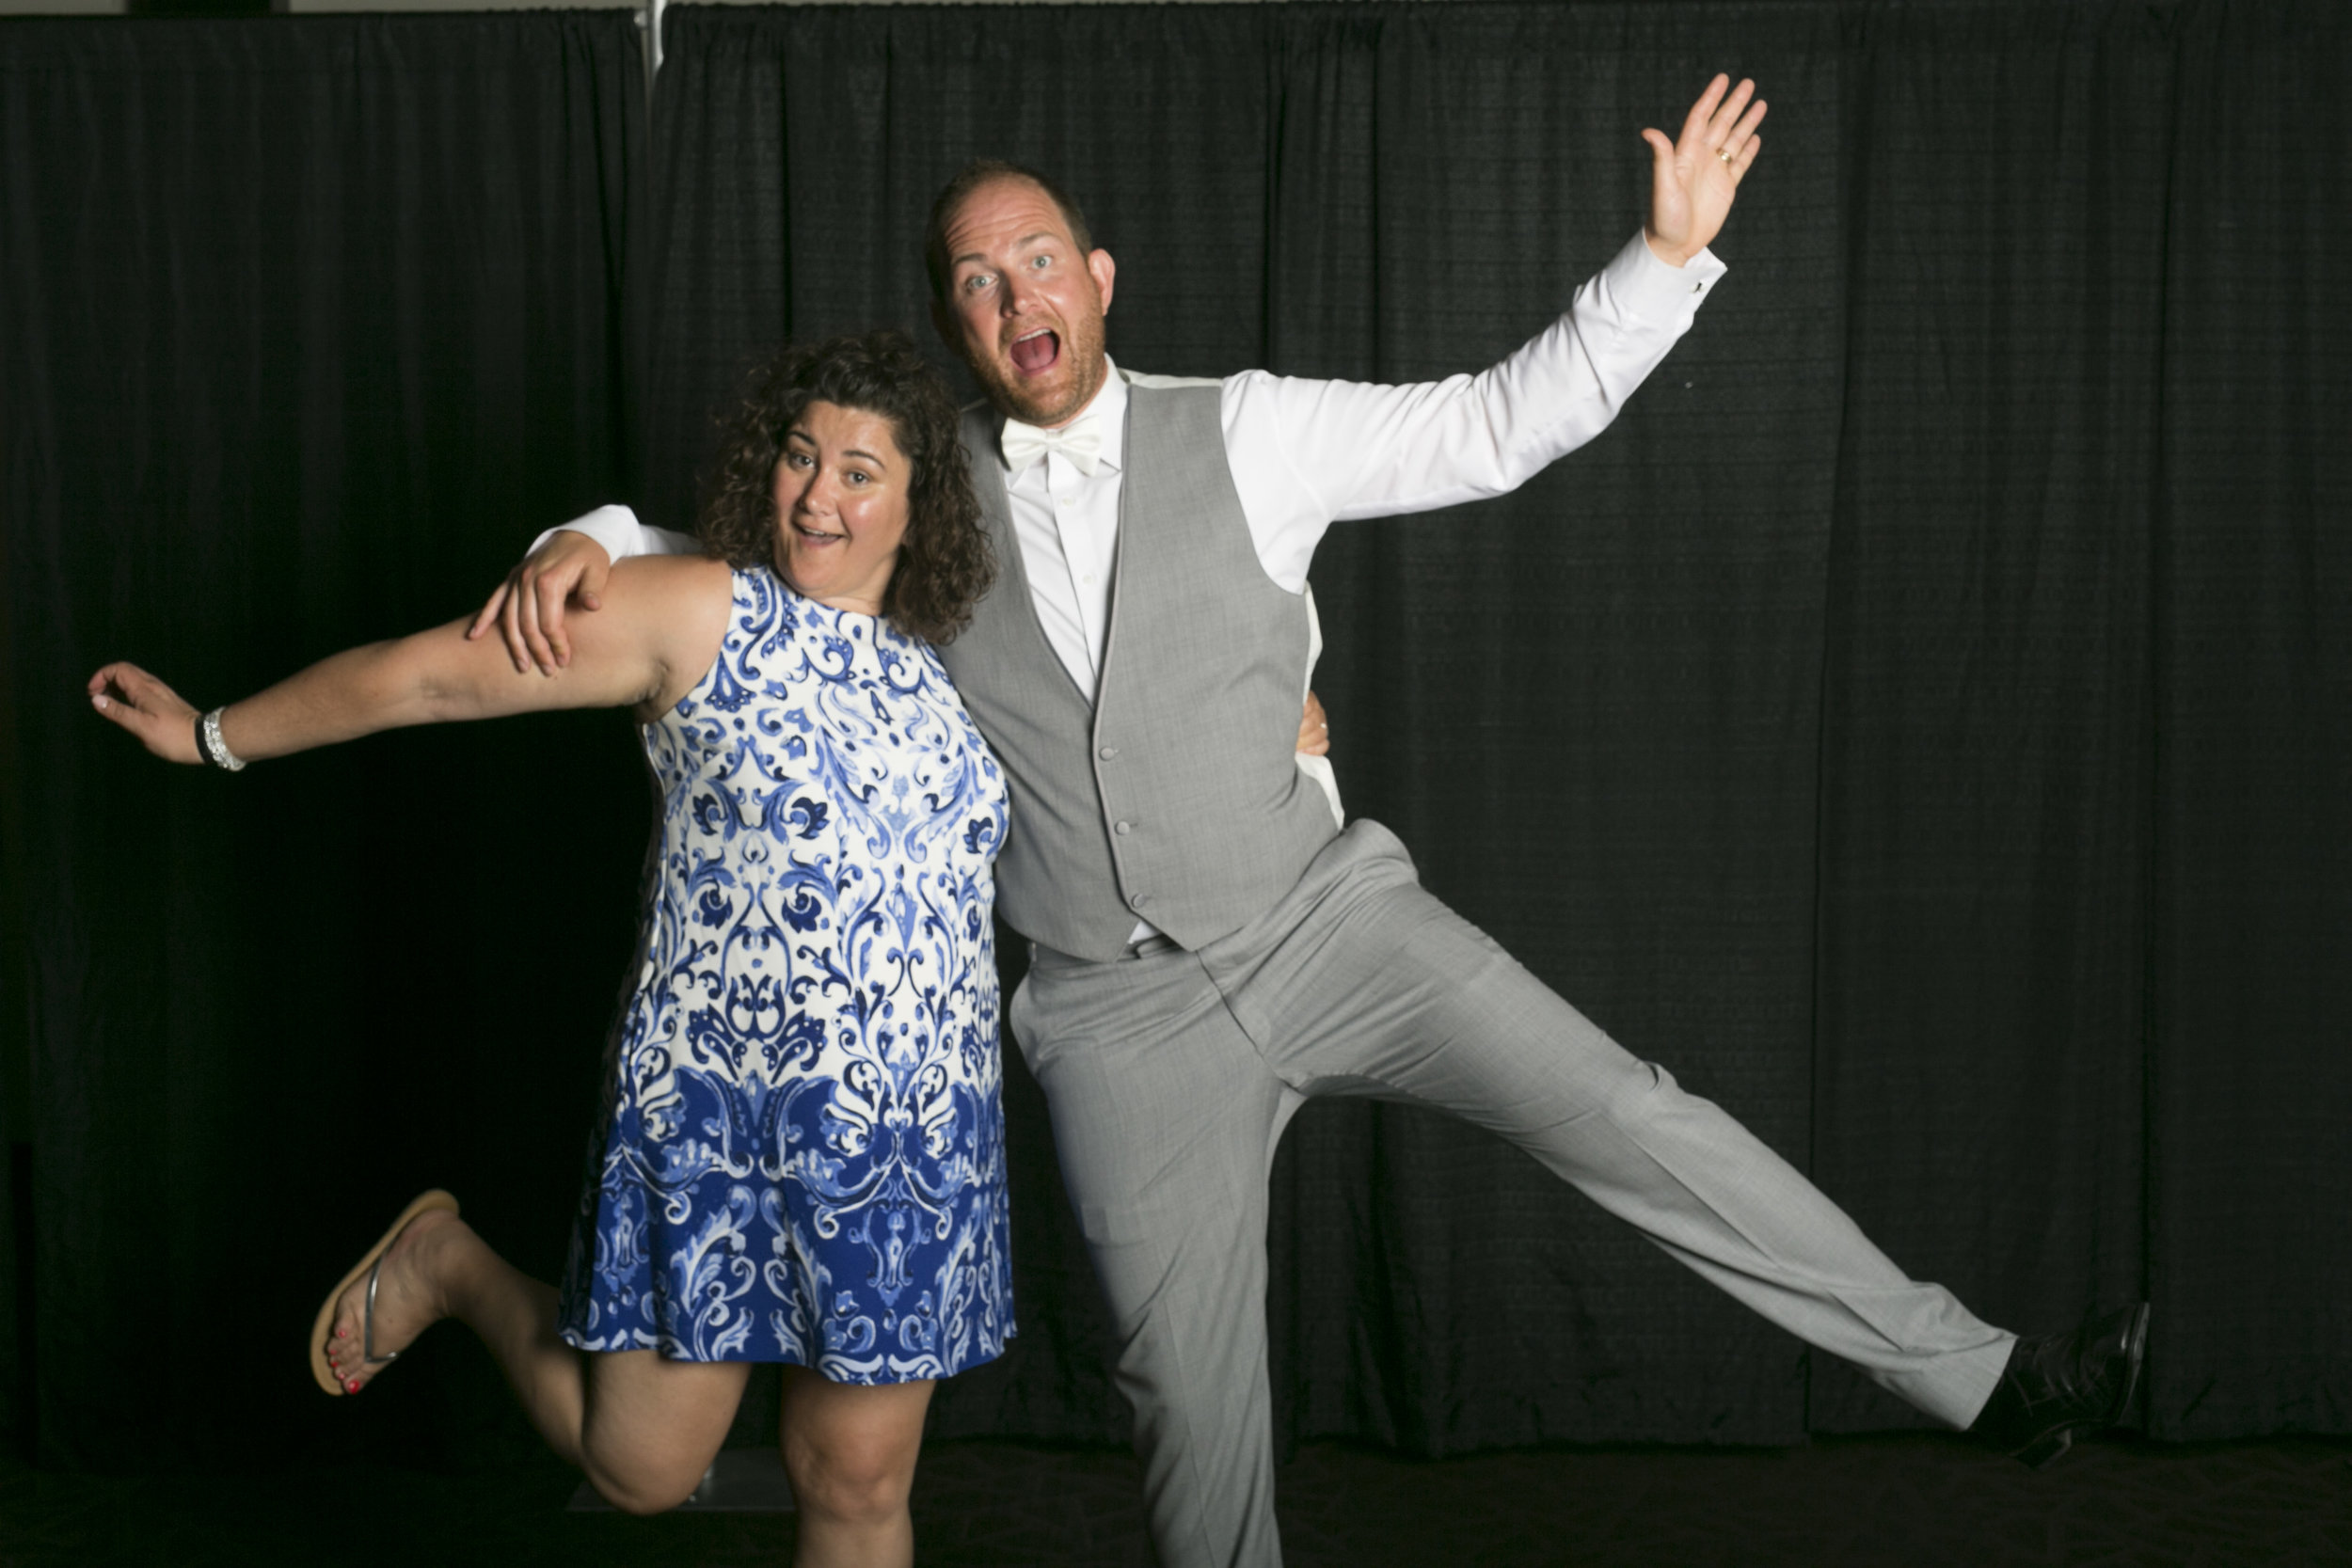 wedding photo booth-1.jpg